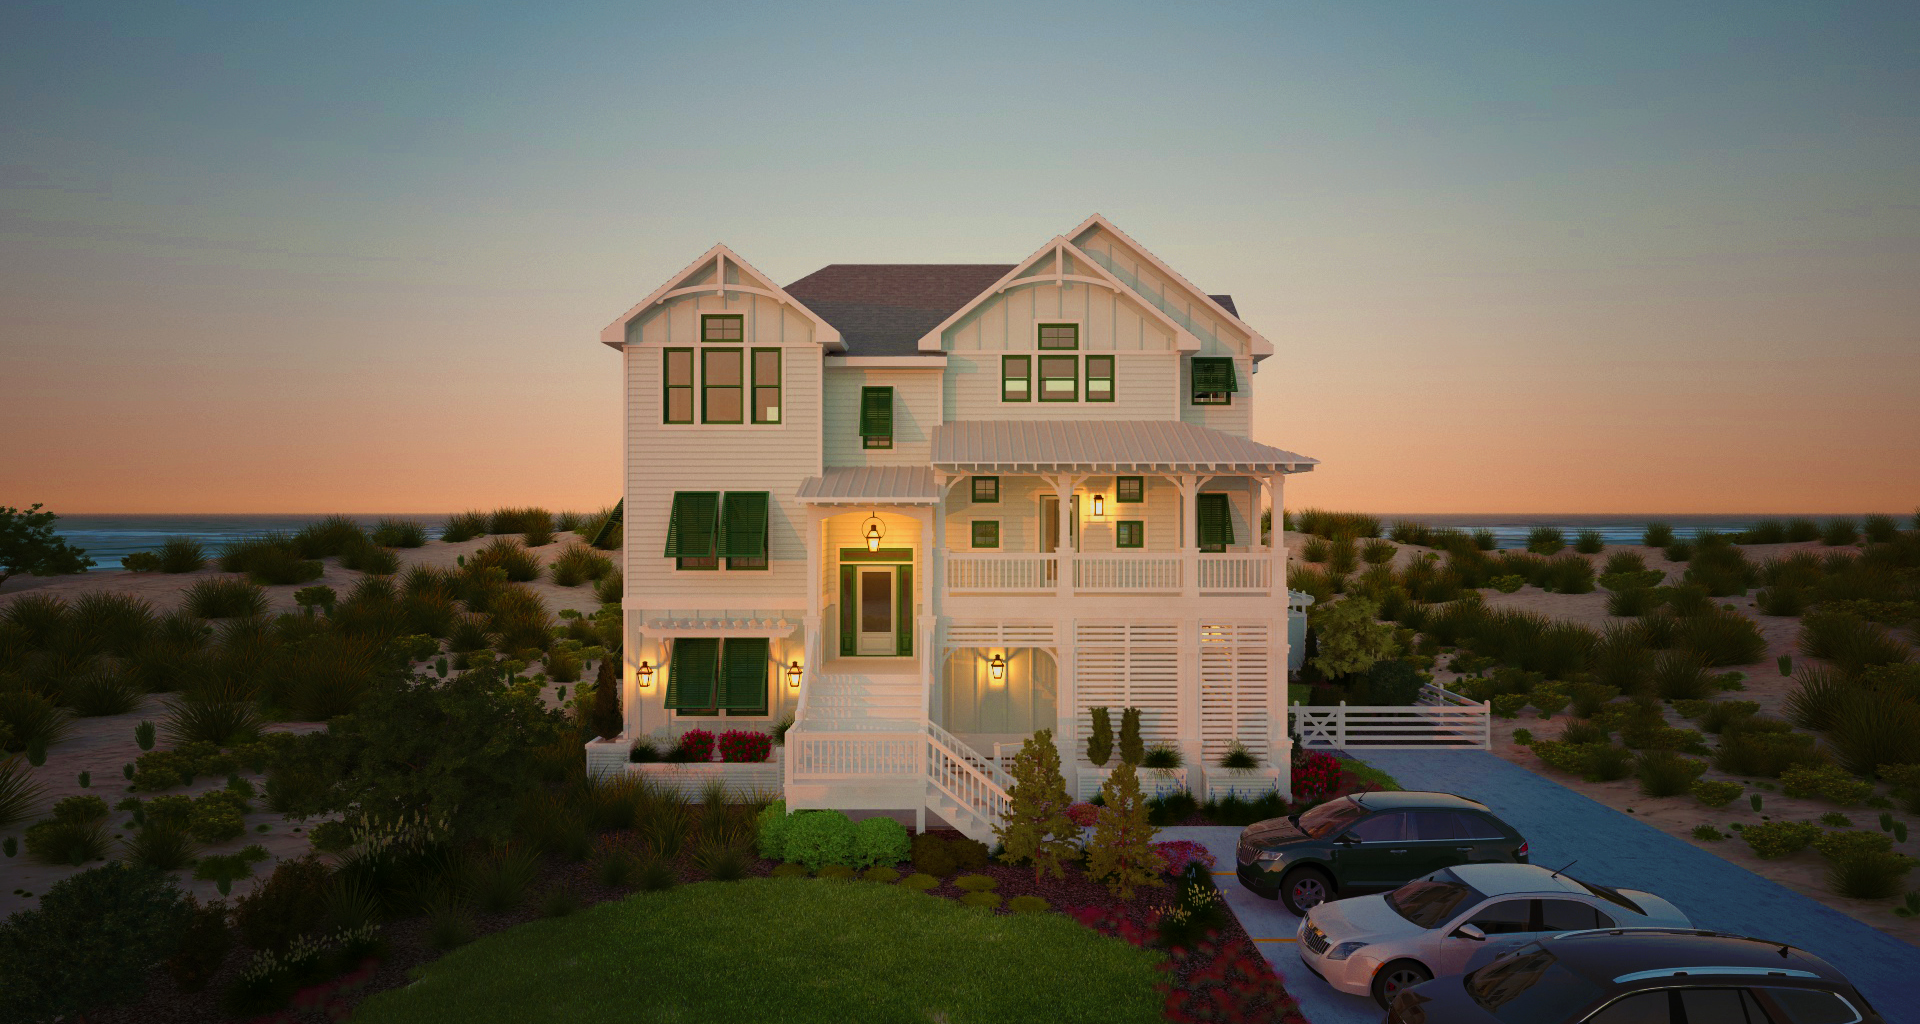 Attirant Florez Design Studios | House Plans/Coastal Home Design/OBX House ...